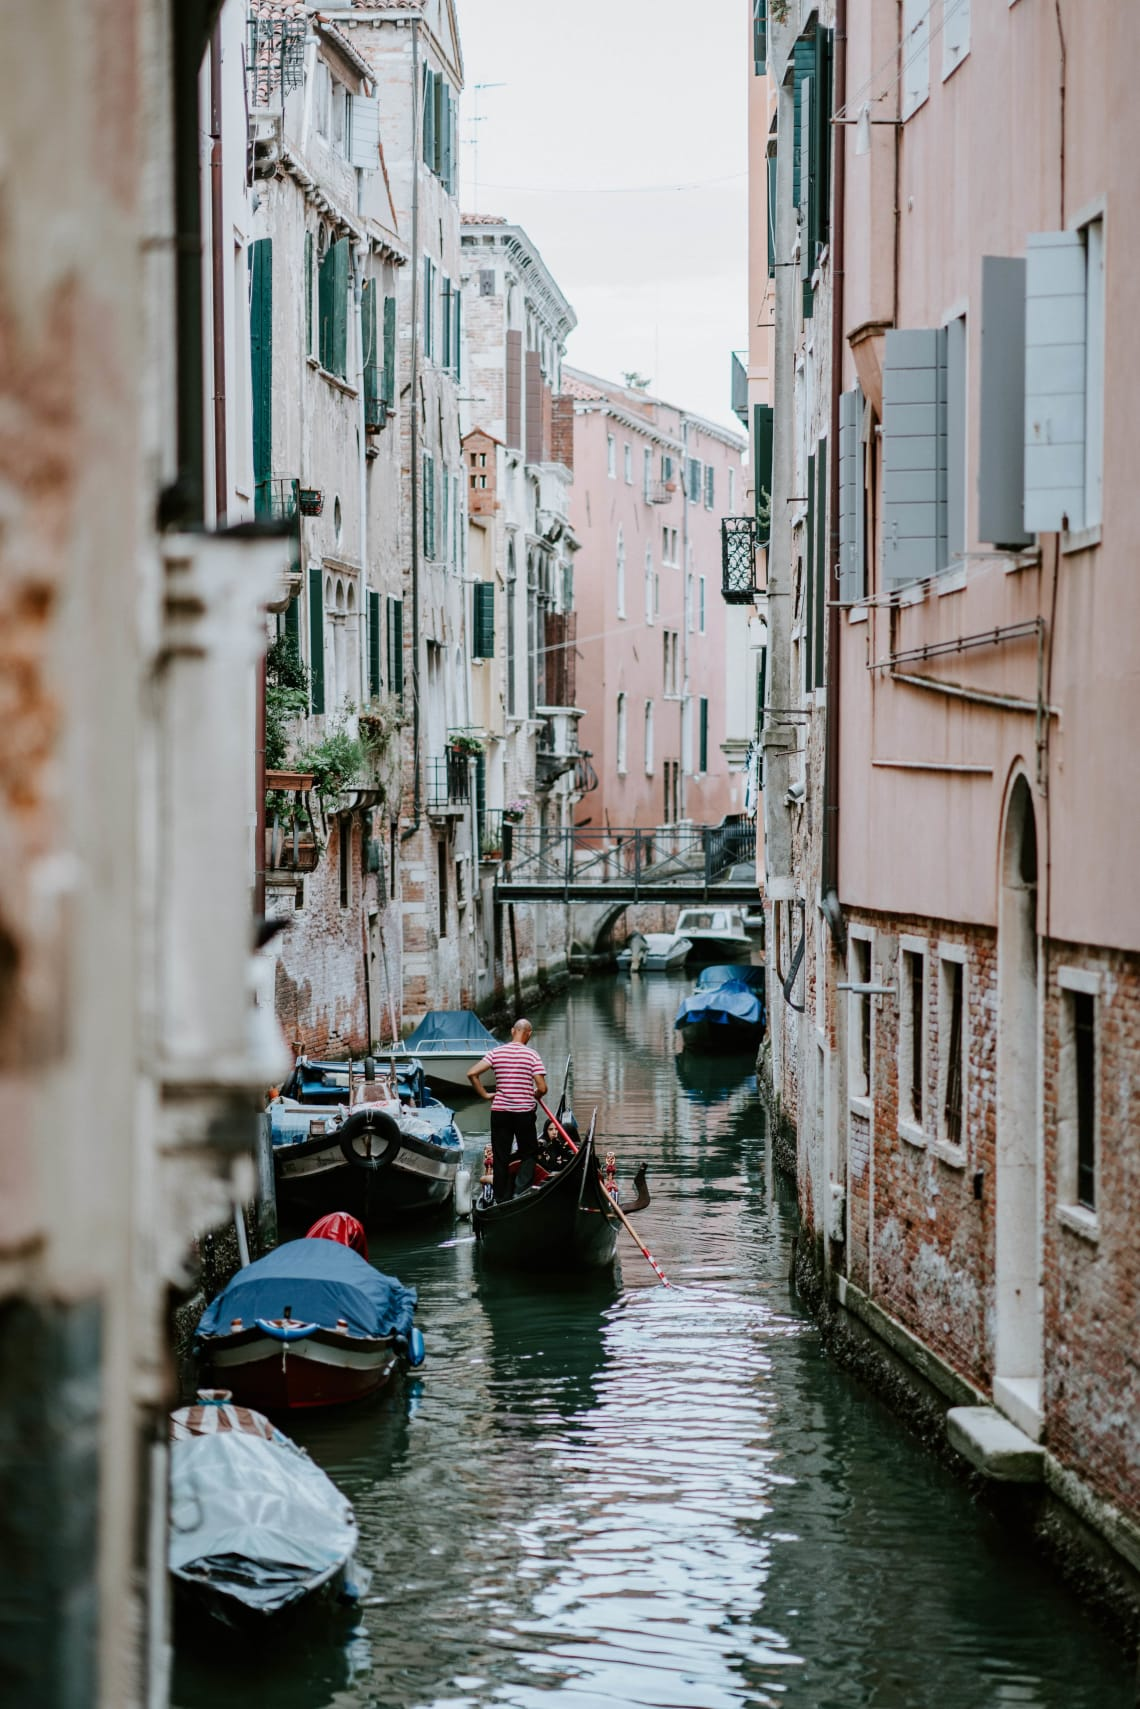 Man rowing down canal, Venice, Italy, Europe